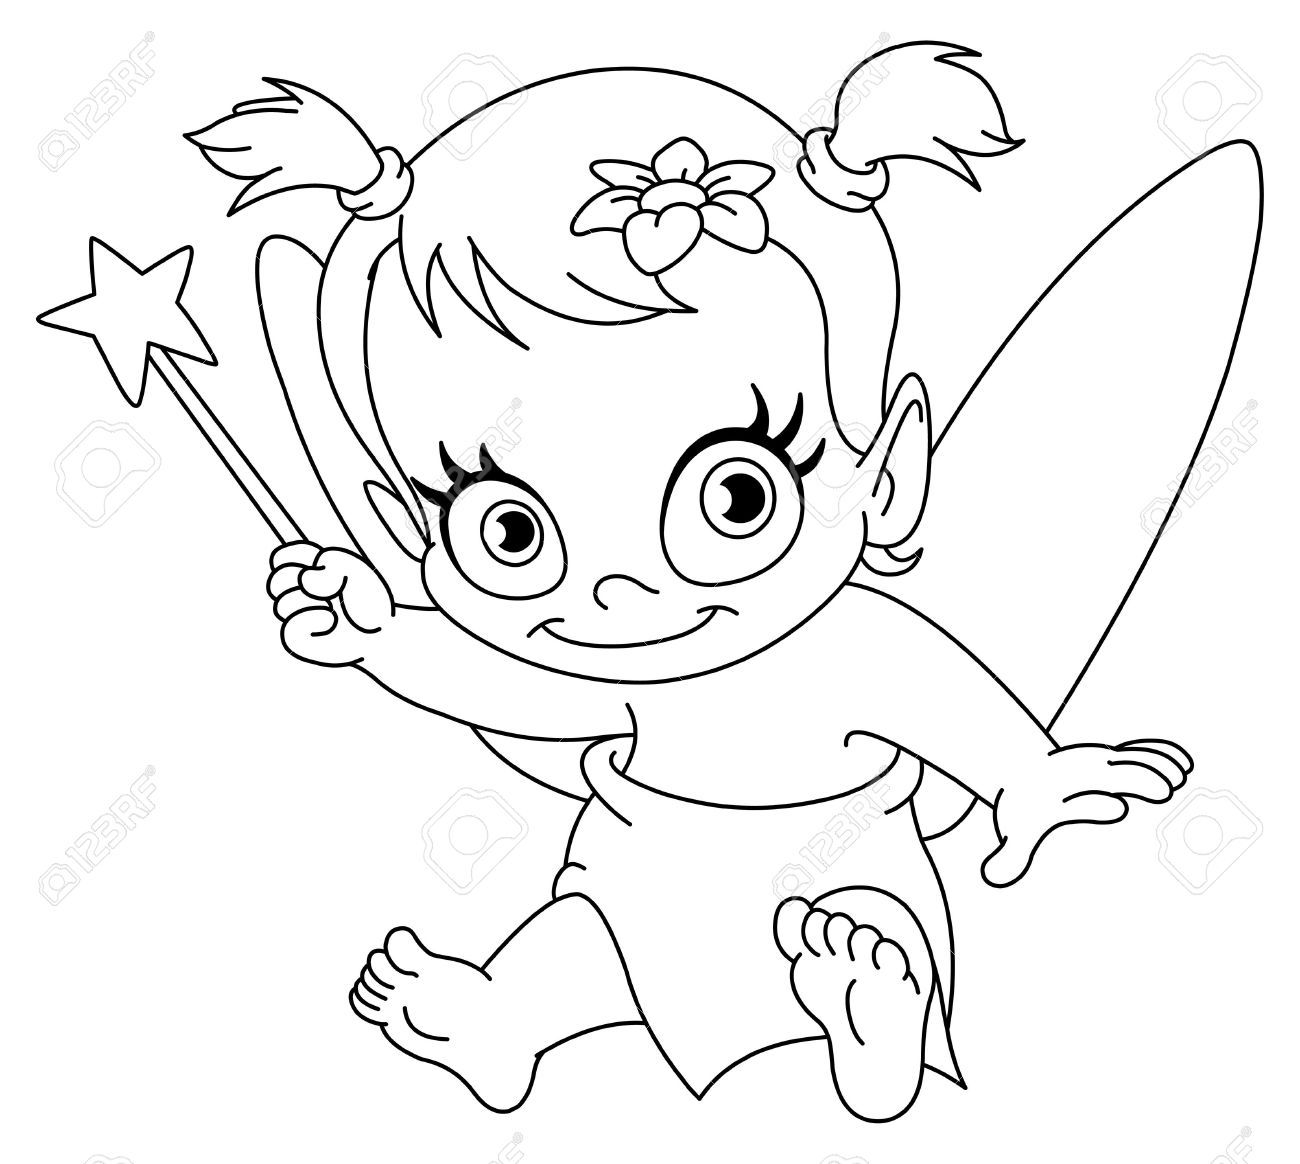 newborn baby girl coloring pages coloring online - Baby Girl Coloring Pages